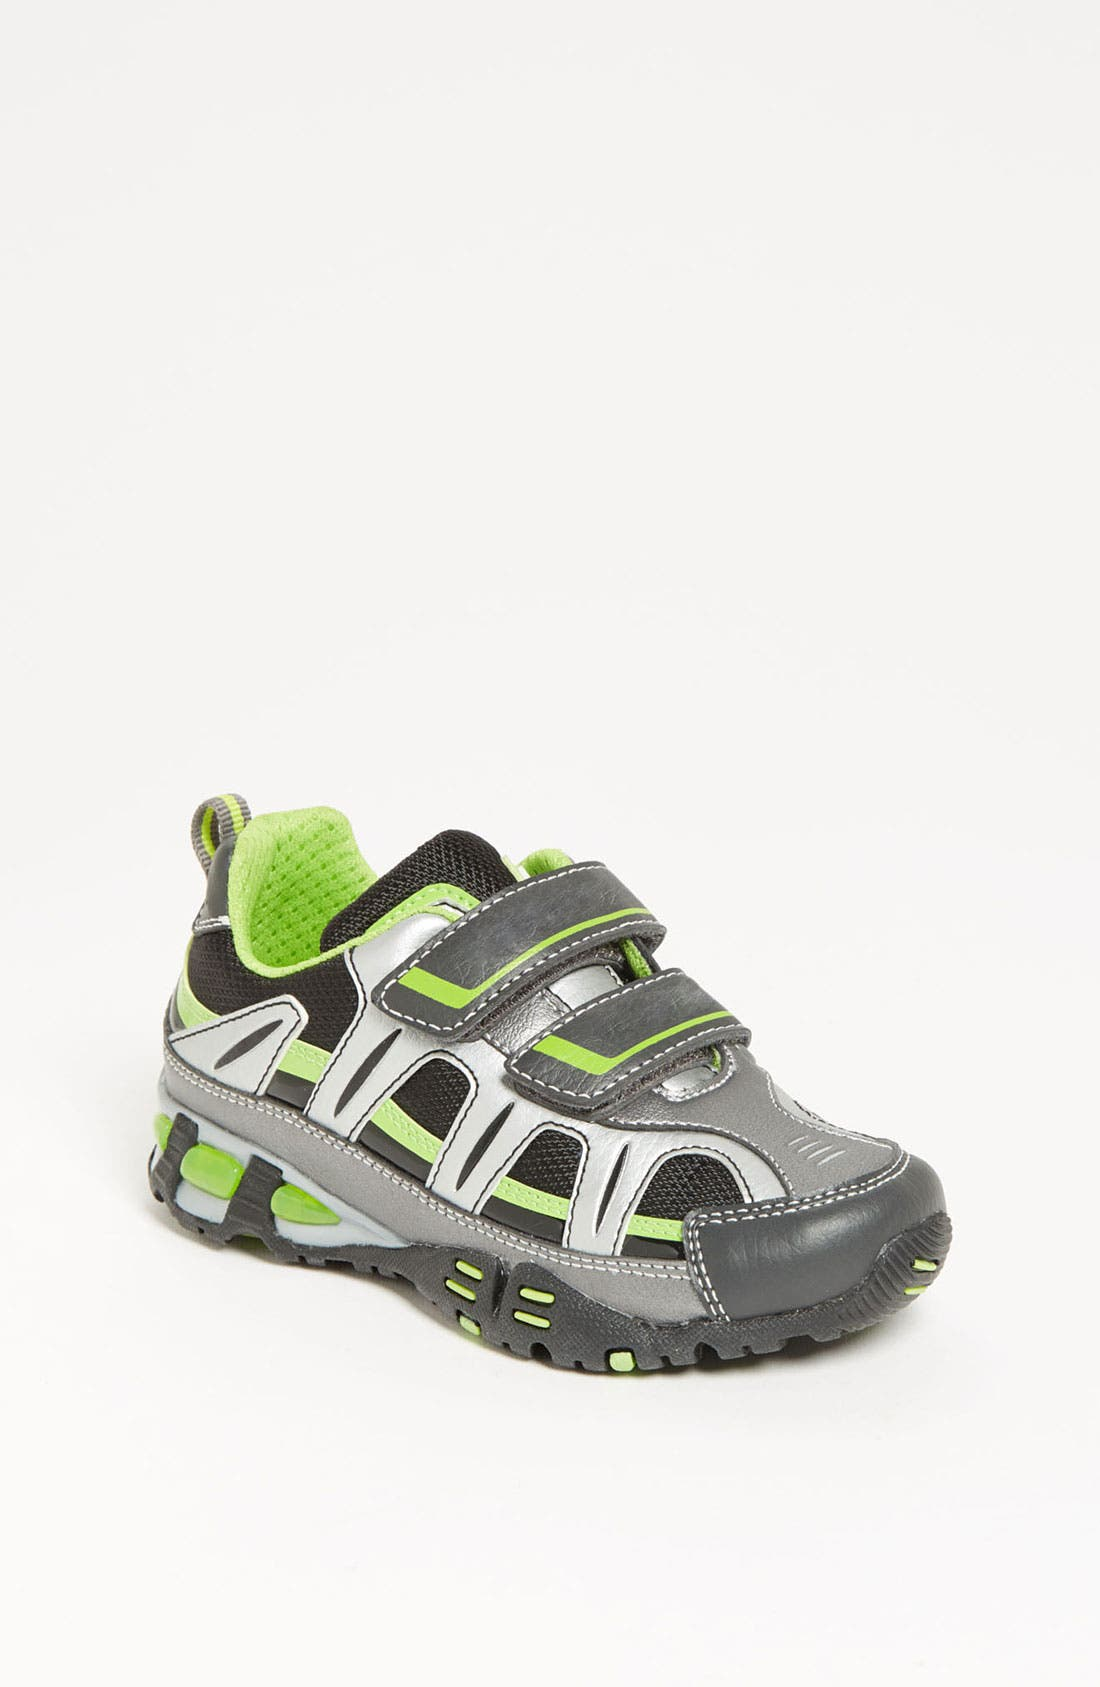 Main Image - Geox 'Light Eclipse 14' Light-Up Sneaker (Toddler, Little Kid & Big Kid)